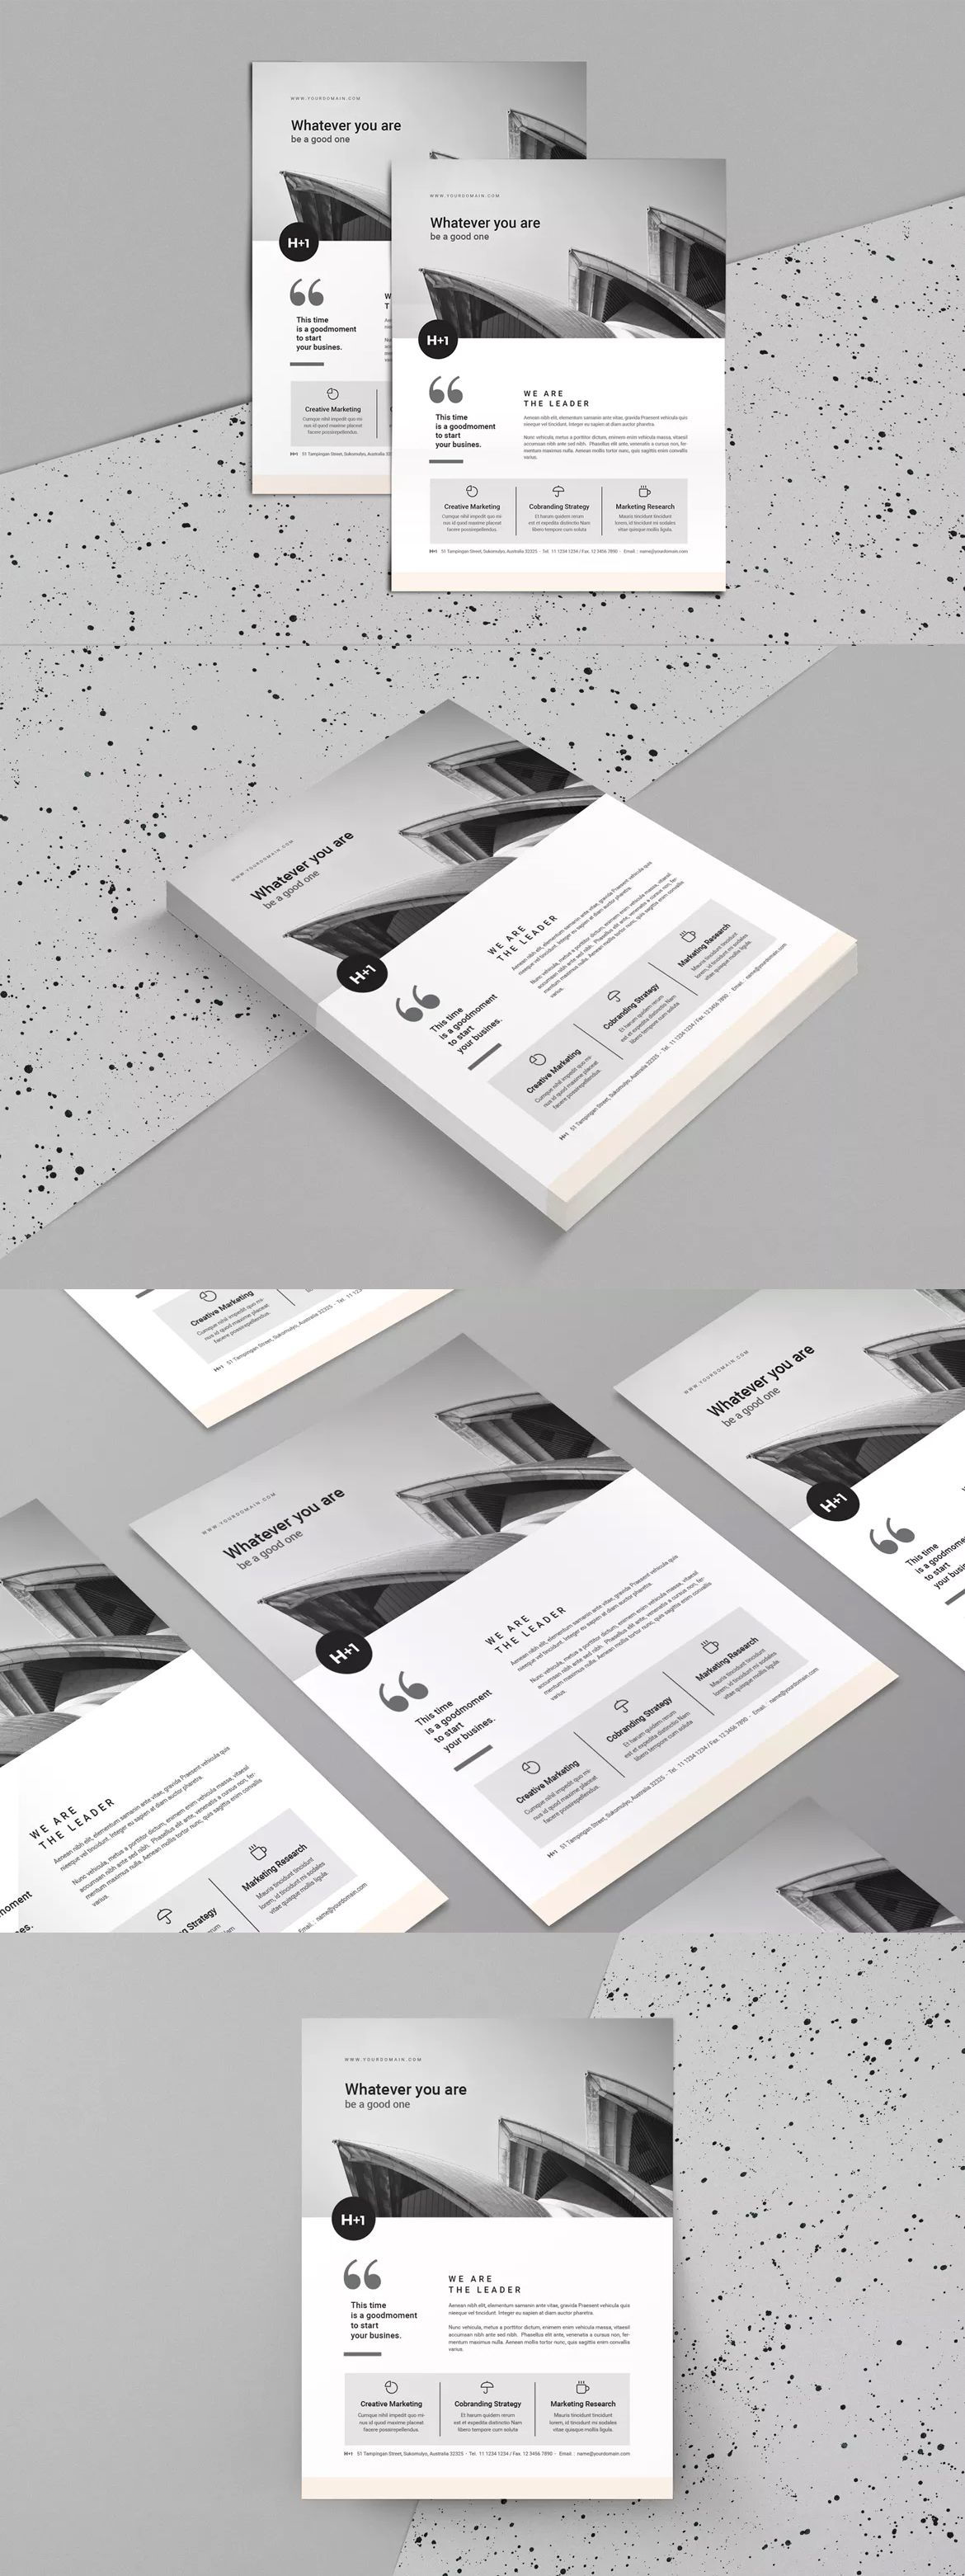 Flyer Template InDesign INDD A4 and US Letter SIze | Flyer Templates ...